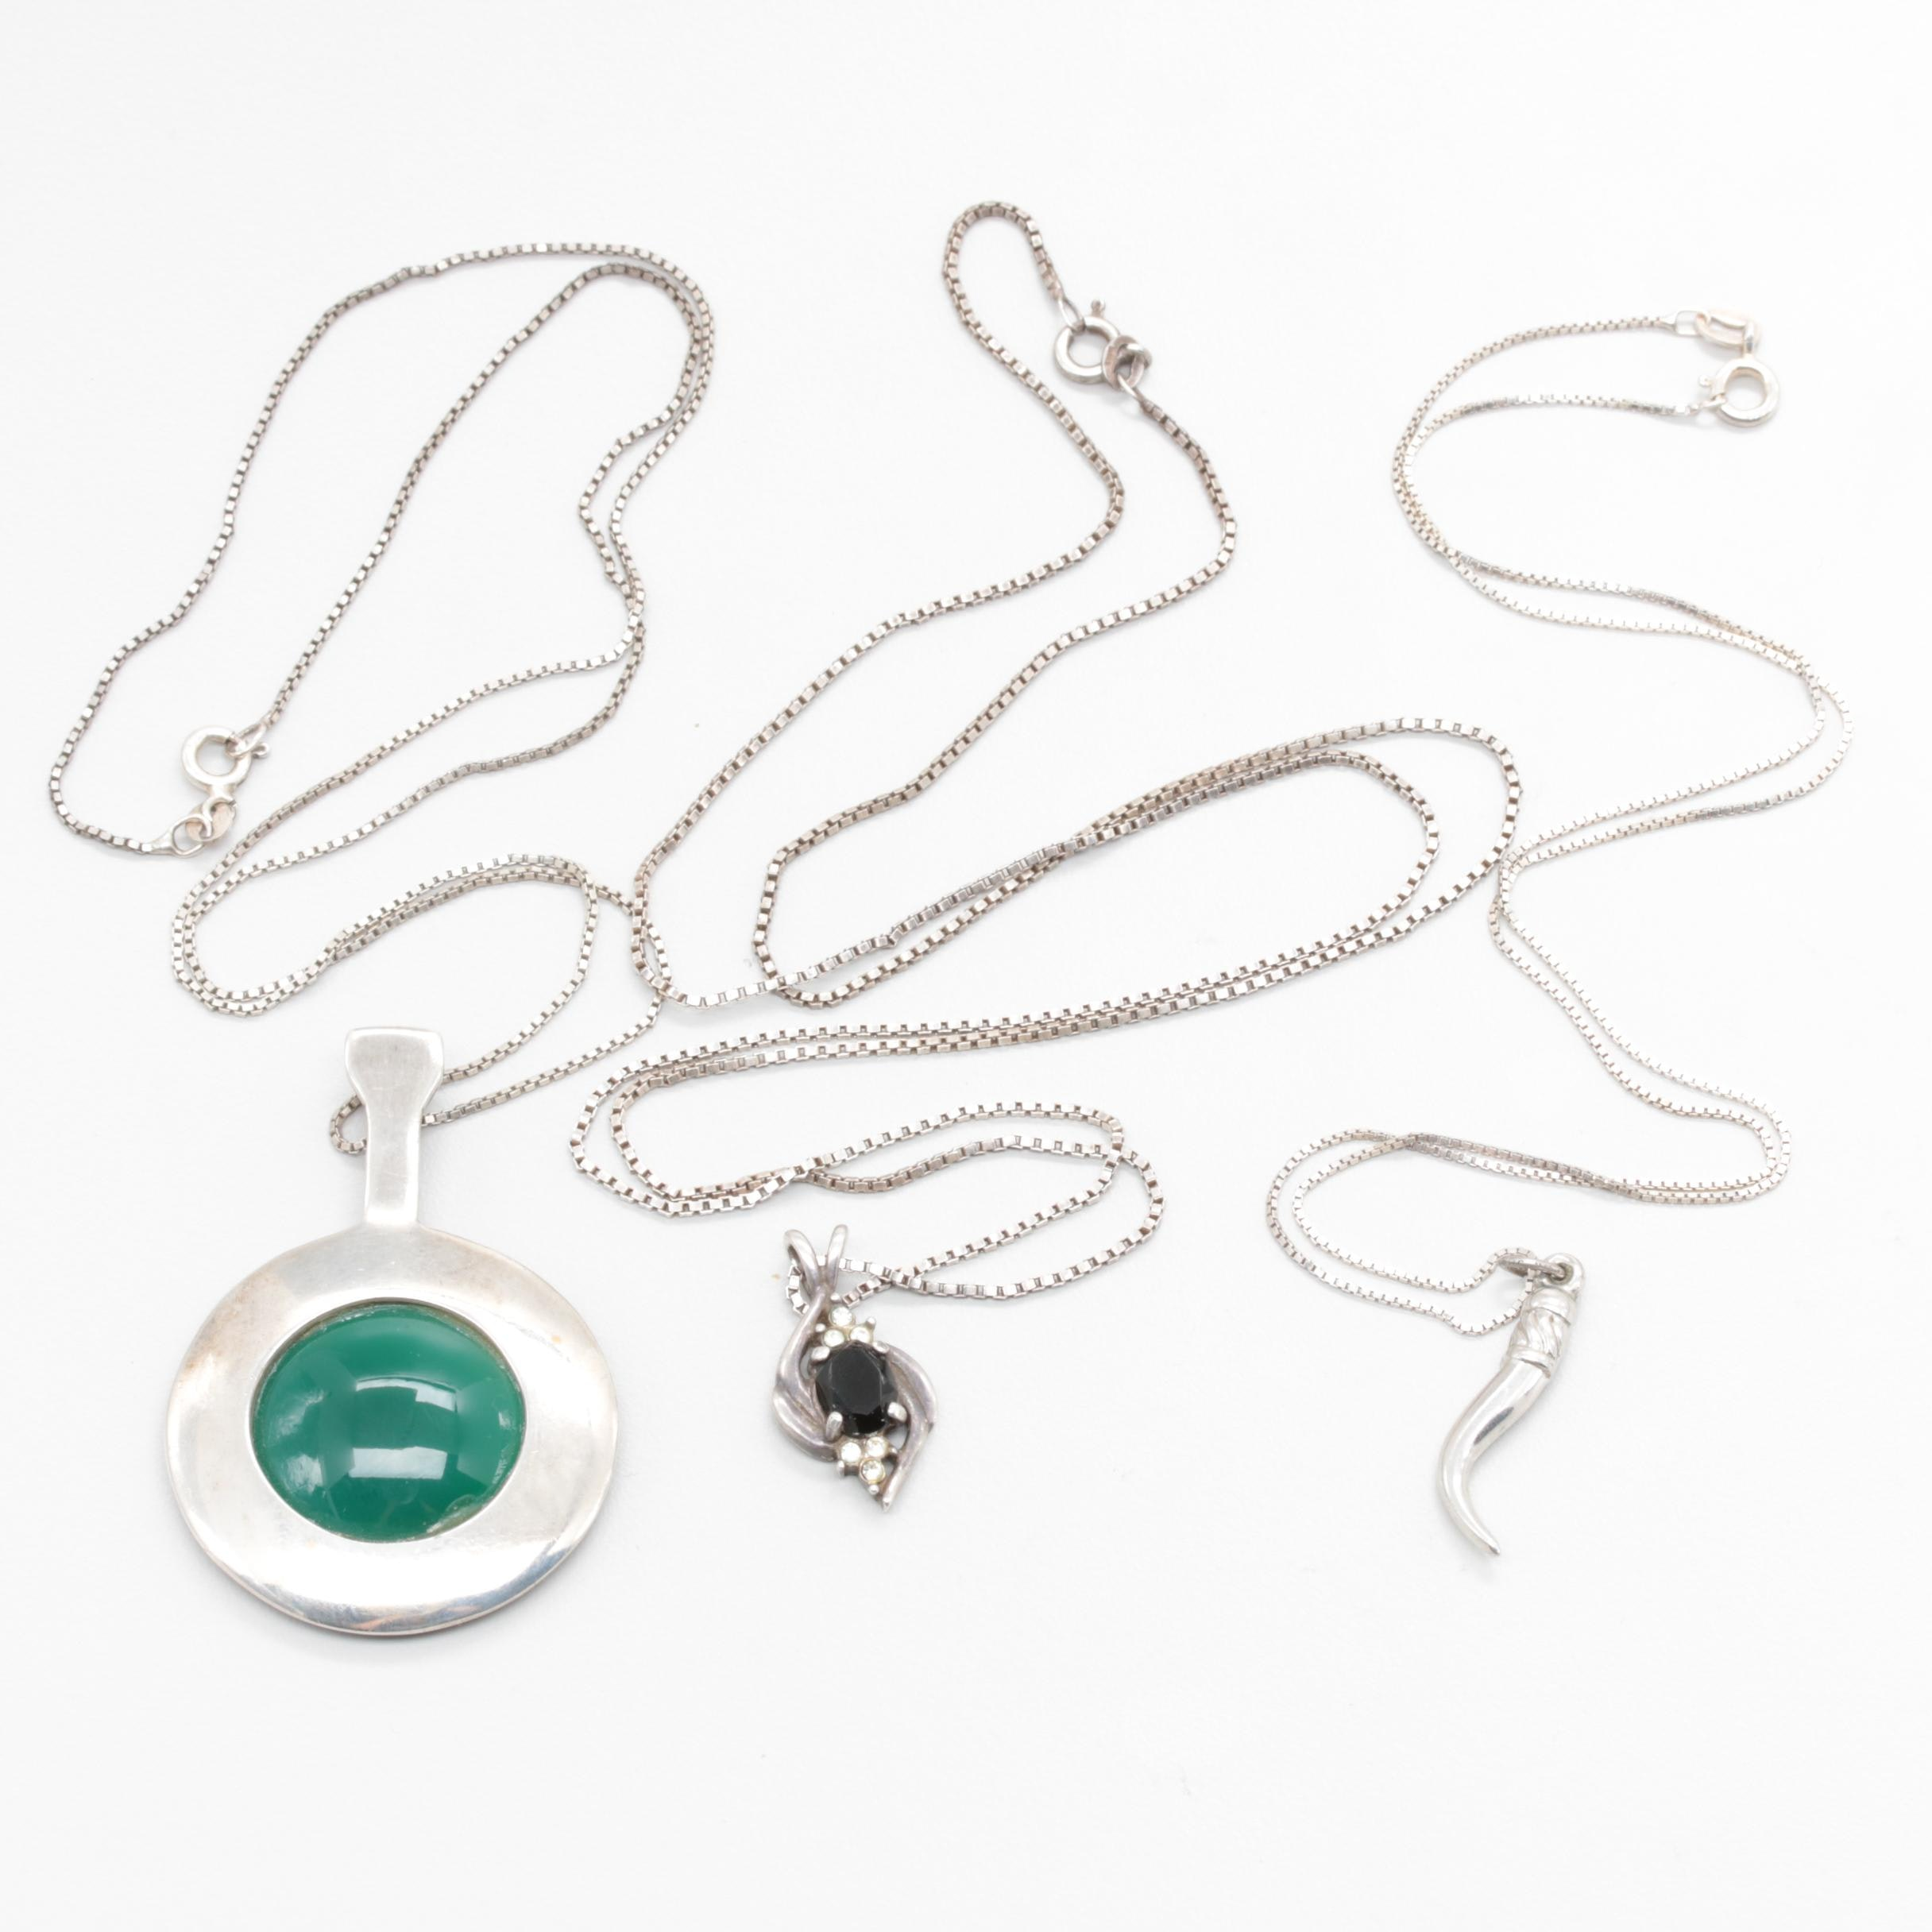 Assorted Sterling Silver Gemstone Necklaces